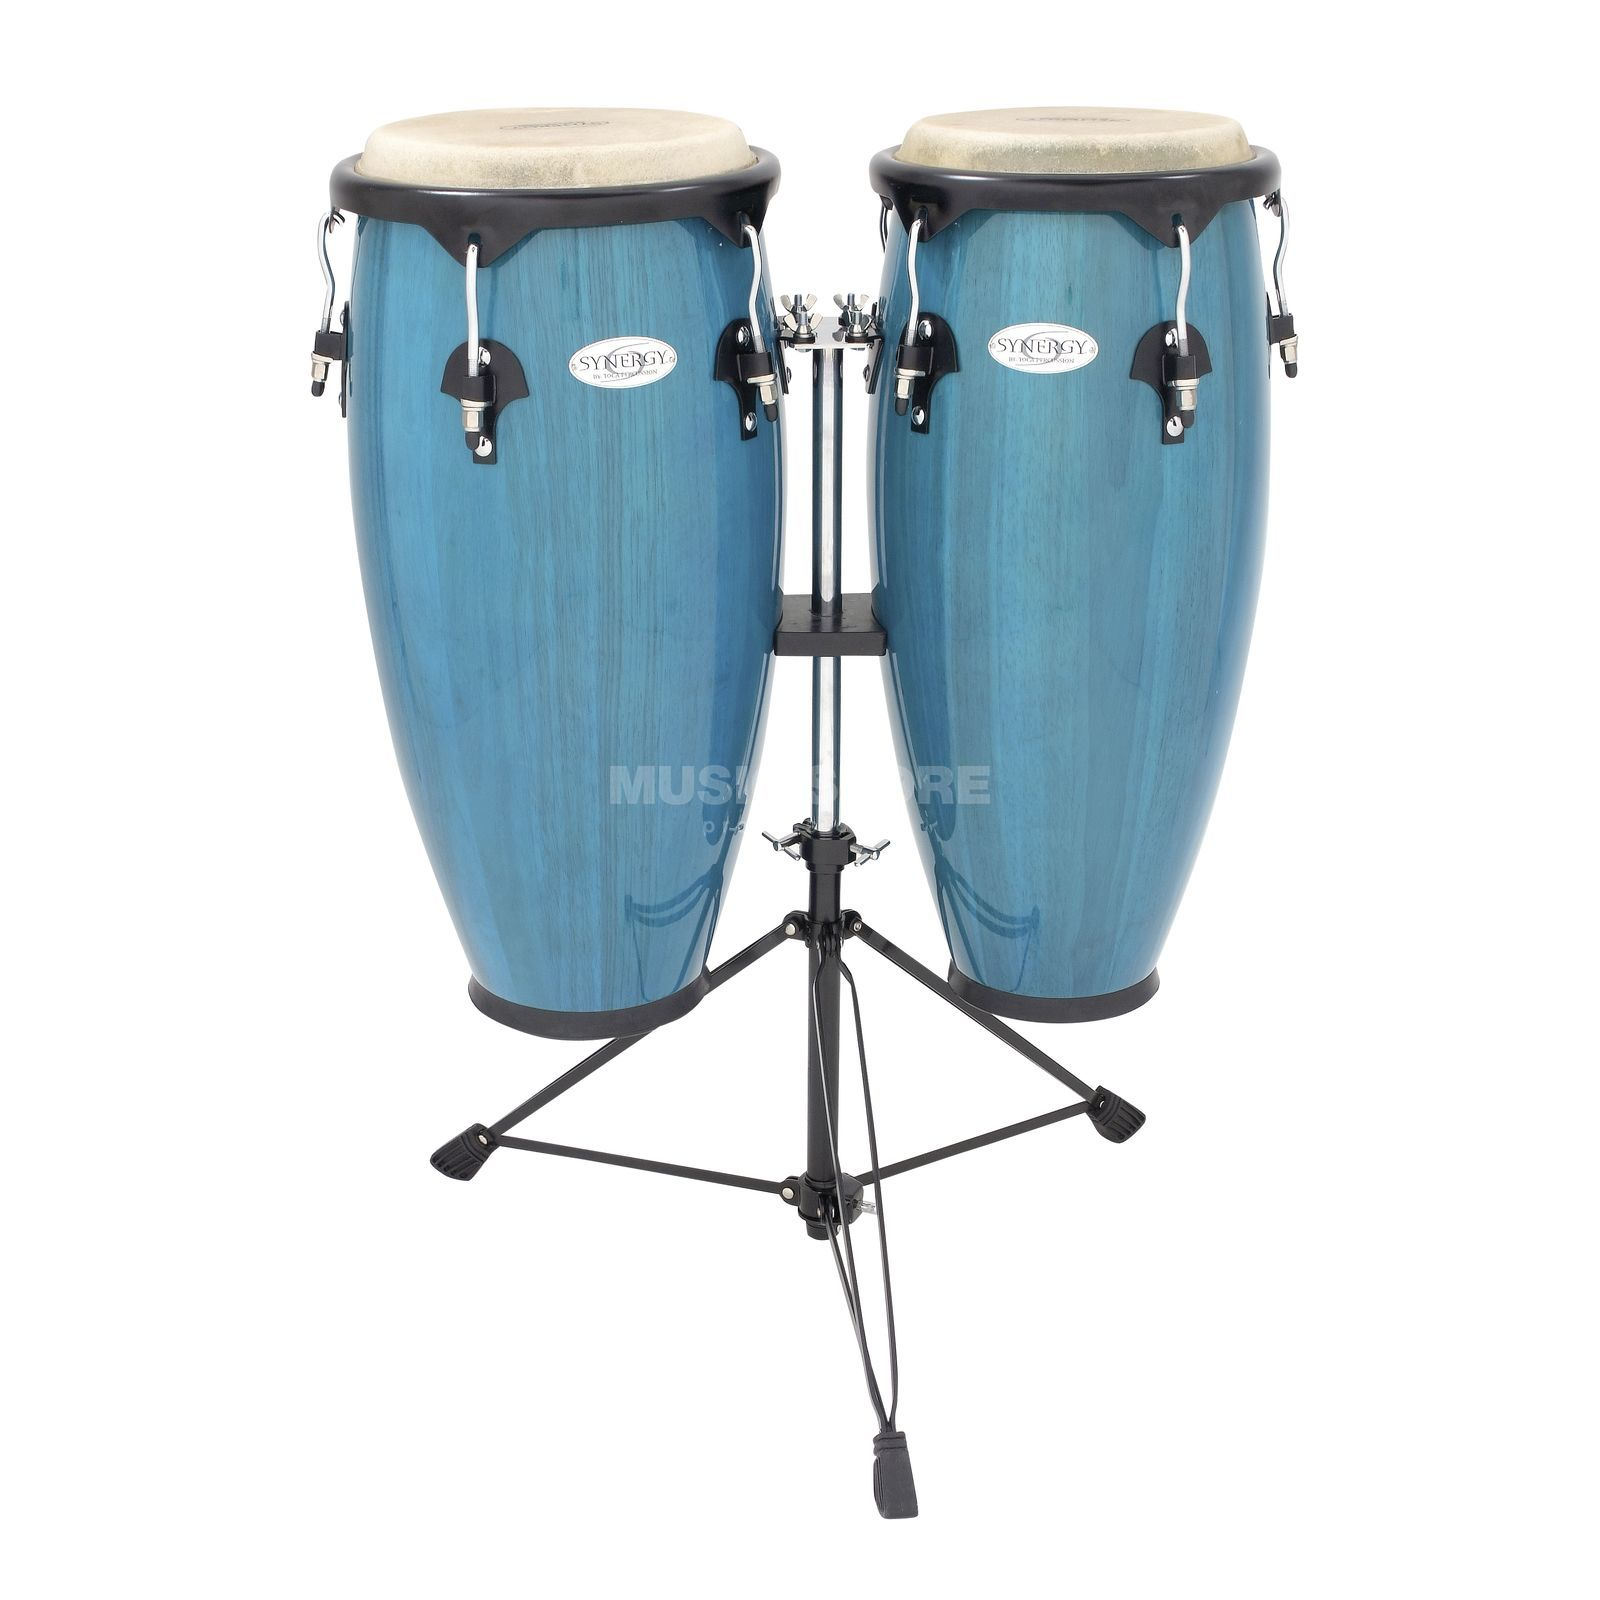 "Toca Percussion Synergy CongaSet 2300BB, 10"" & 11"", Bahama Blue Produktbild"